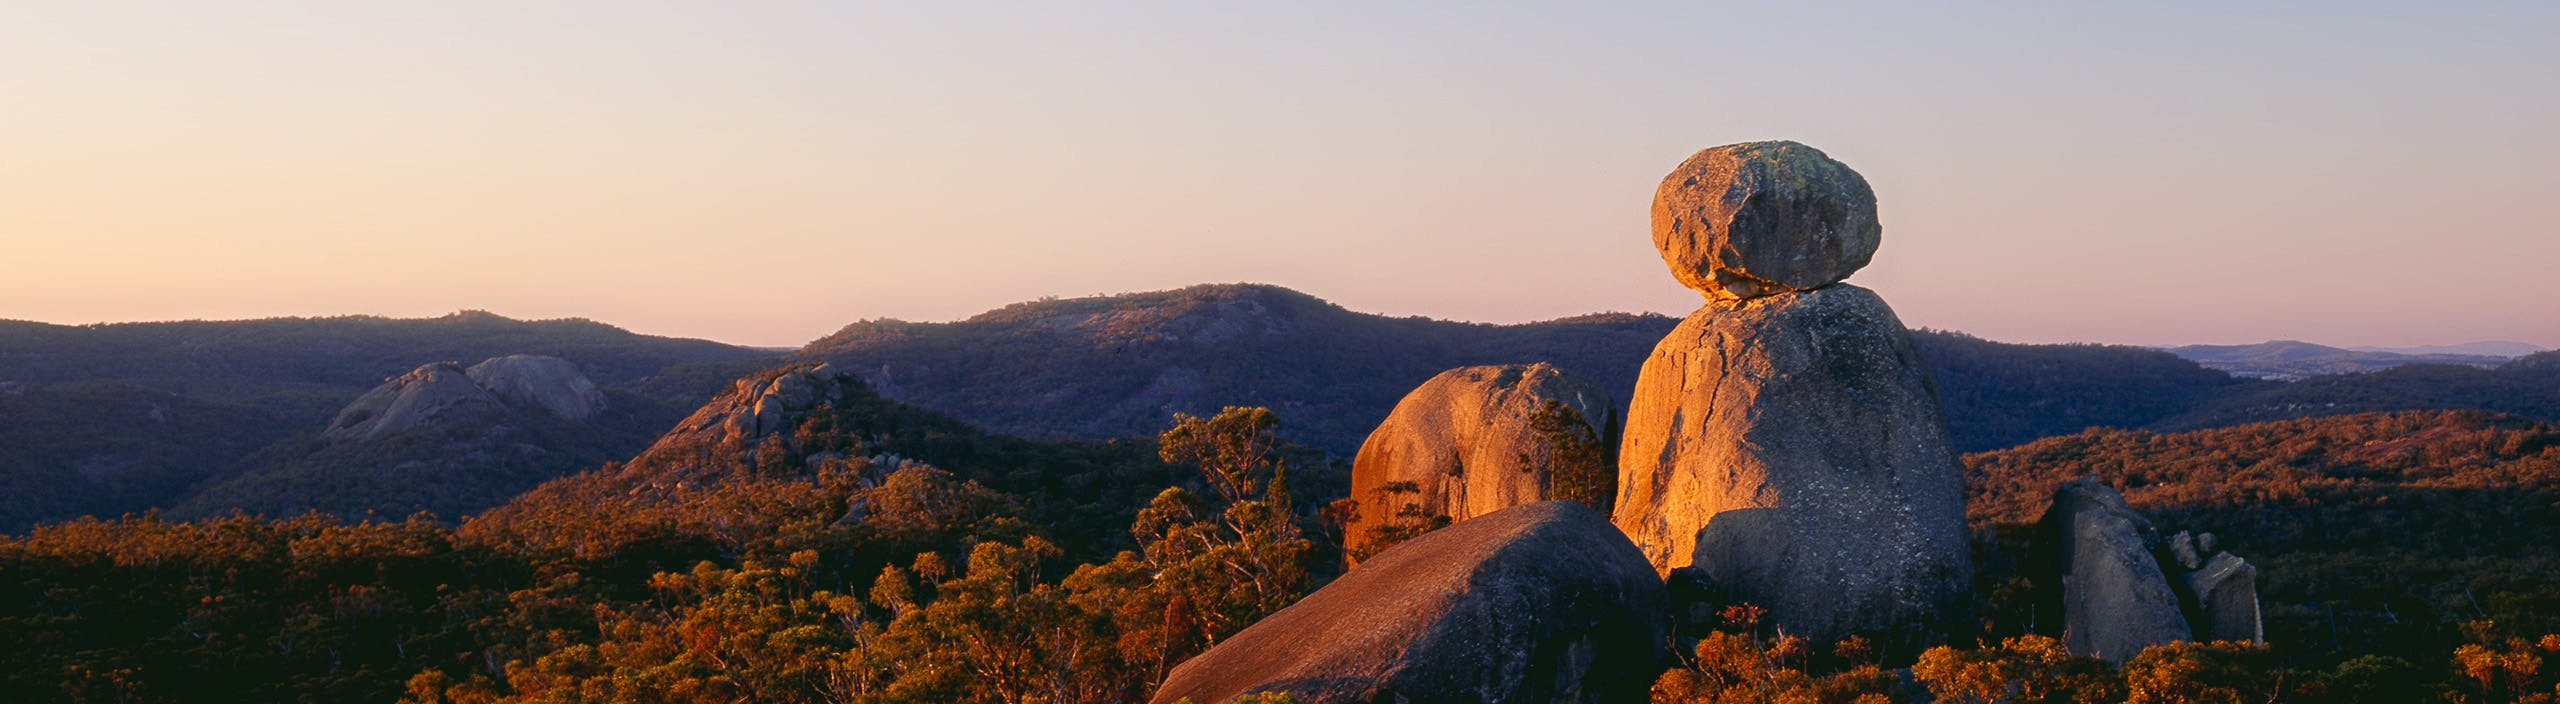 View from the Sphinx at Girraween National Park